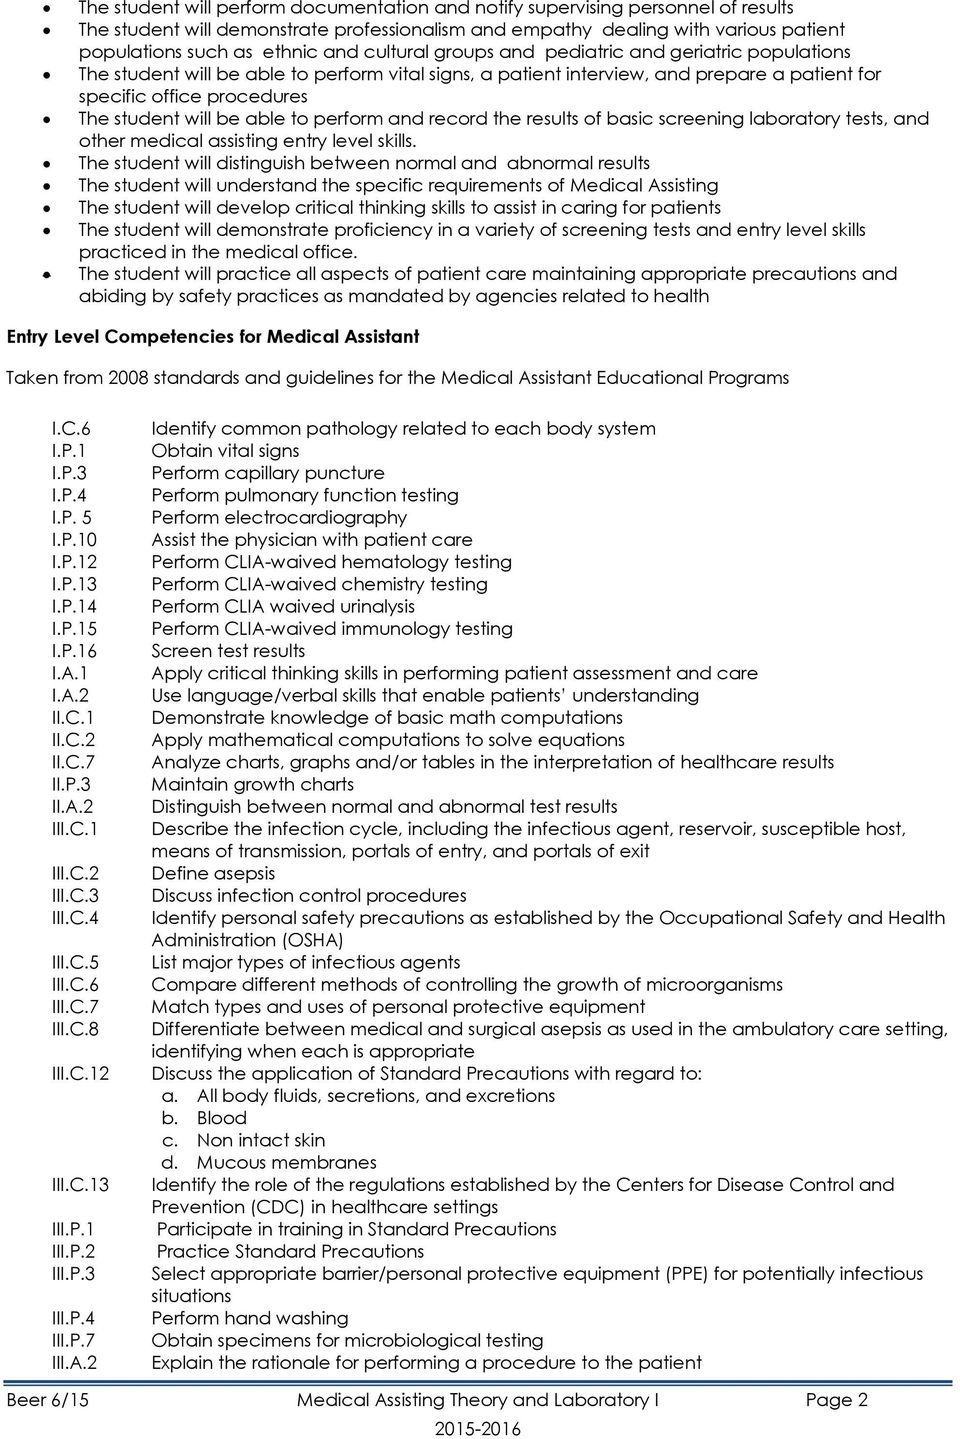 medical assisting program supplement pdf able to perform and record the results of basic screening laboratory tests and other medical